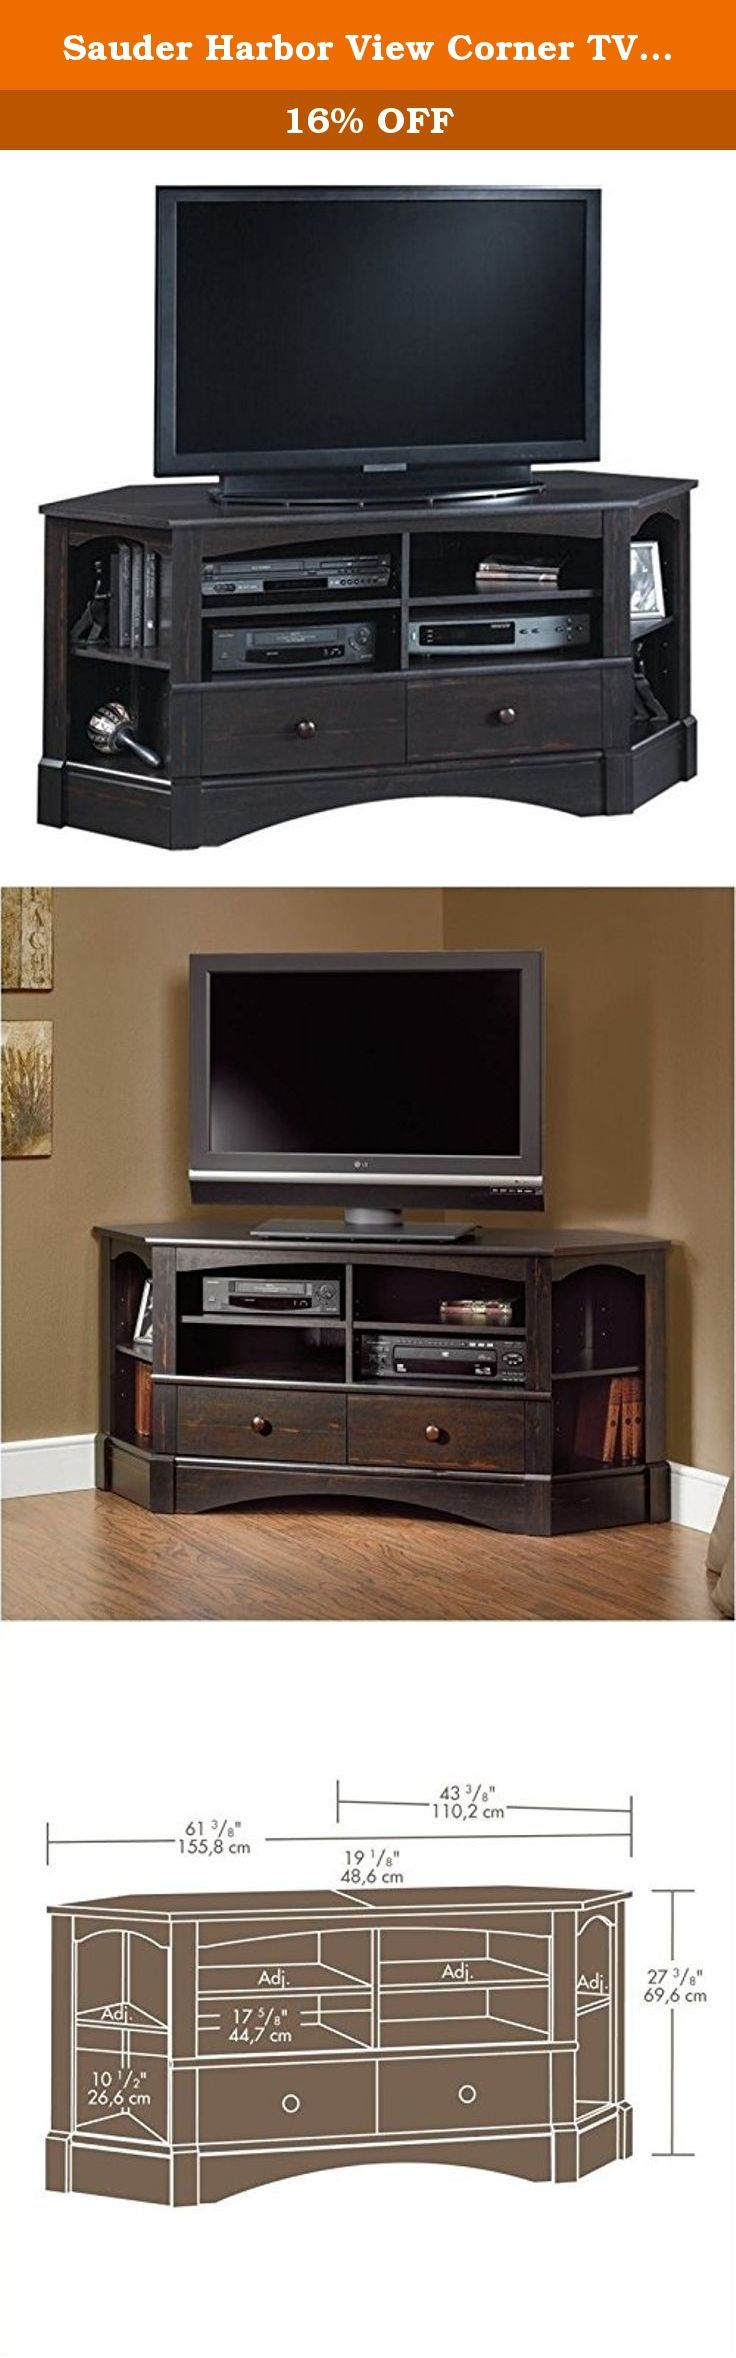 Sauder Tv Stands | Television Stands at Walmart | Highboy Wood Tv Stand